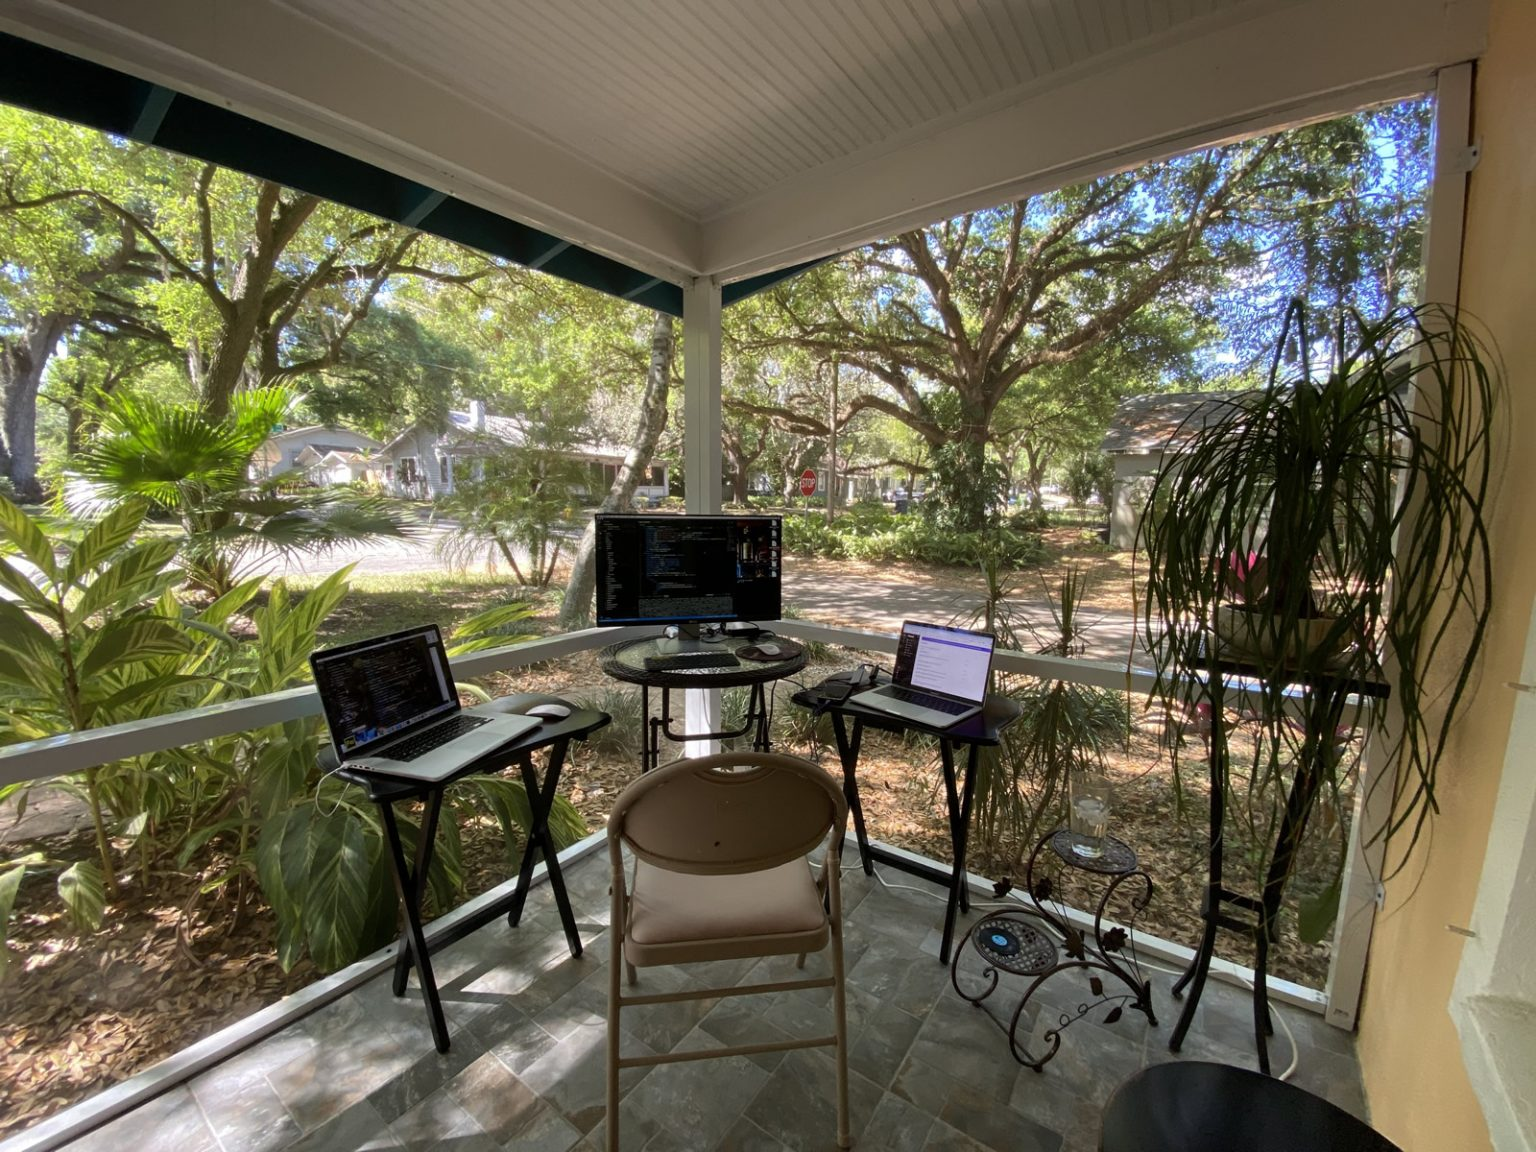 A screened-in front porch with a chair, table, and two laptop computers. There is a view of a garden with a tree-lined residential street corner.